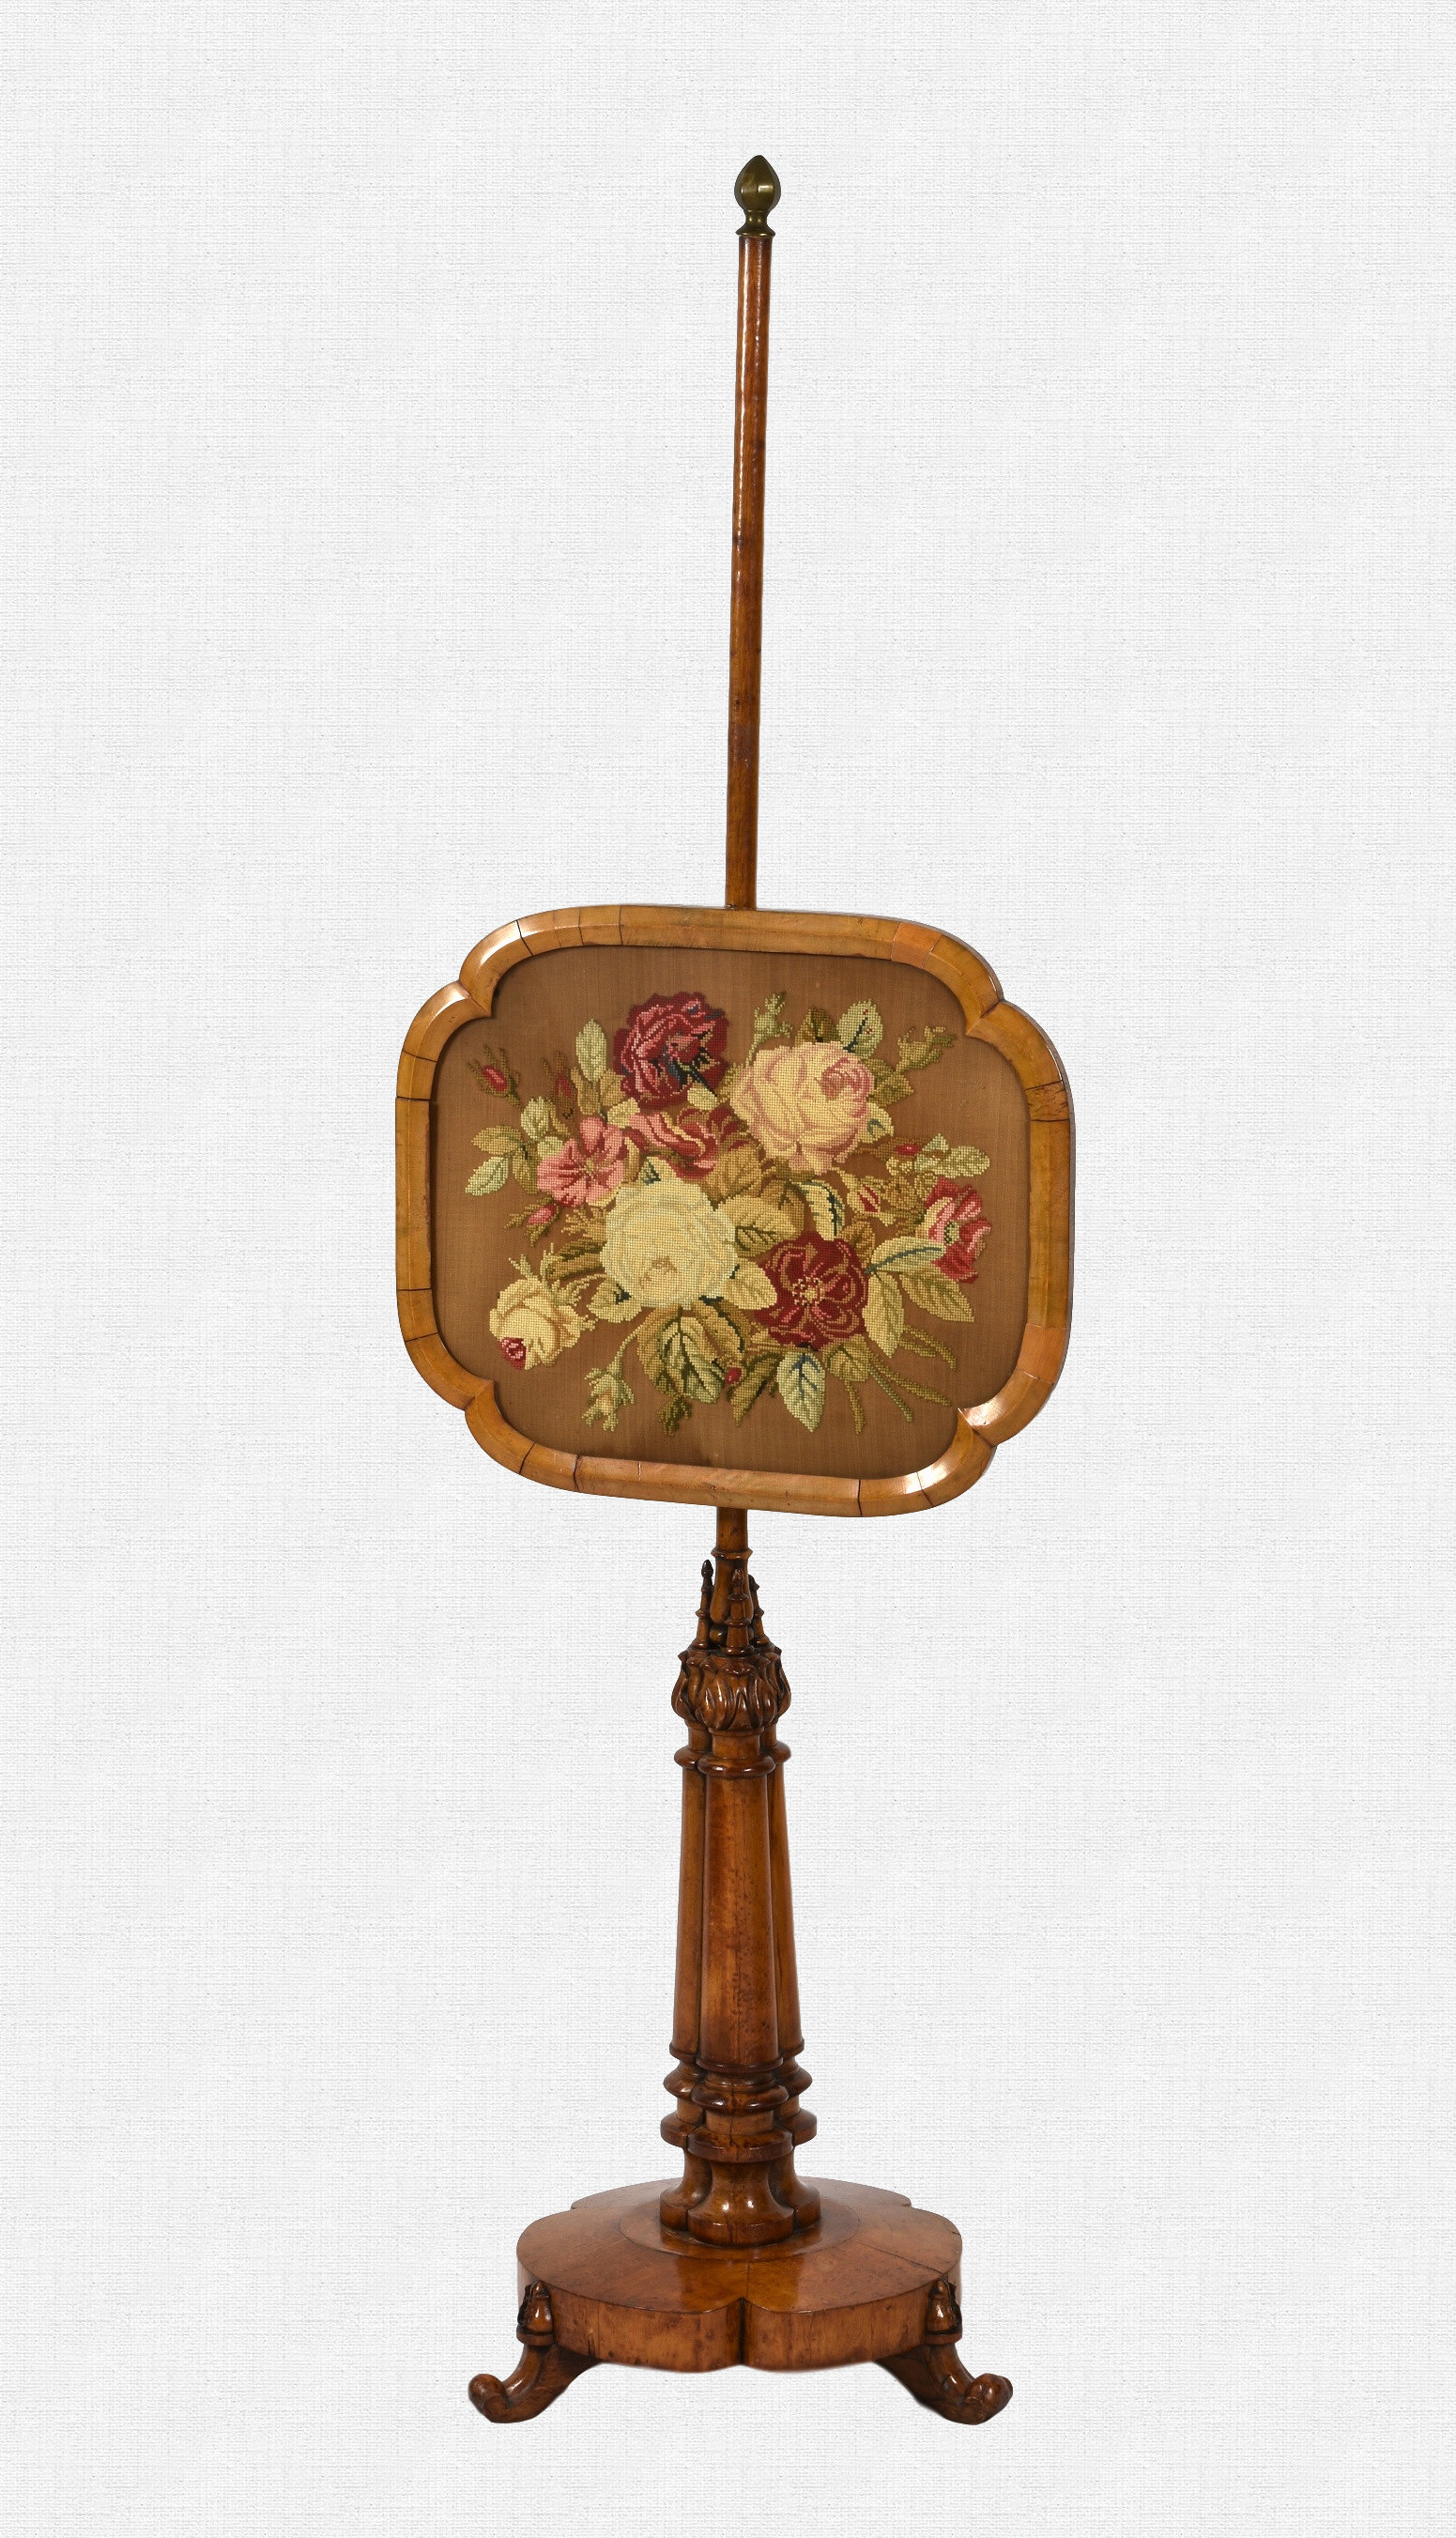 Lot 590 - A 19th century bird's eye maple pole screen the shaped rectangular adjustable section with floral